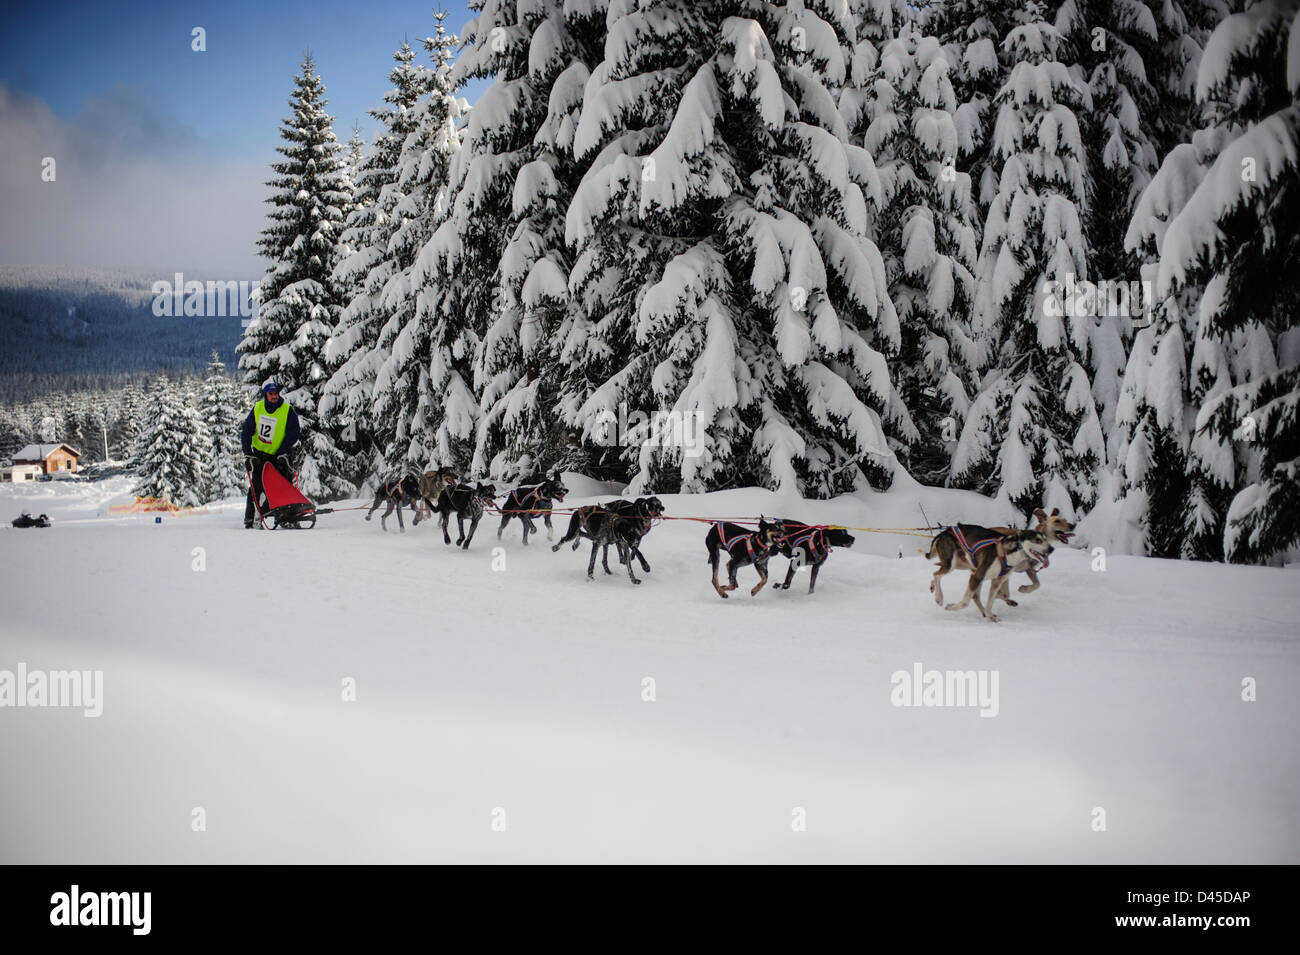 A sleddog team racing in the Izery mountains, Jakuszyce, Poland. - Stock Image